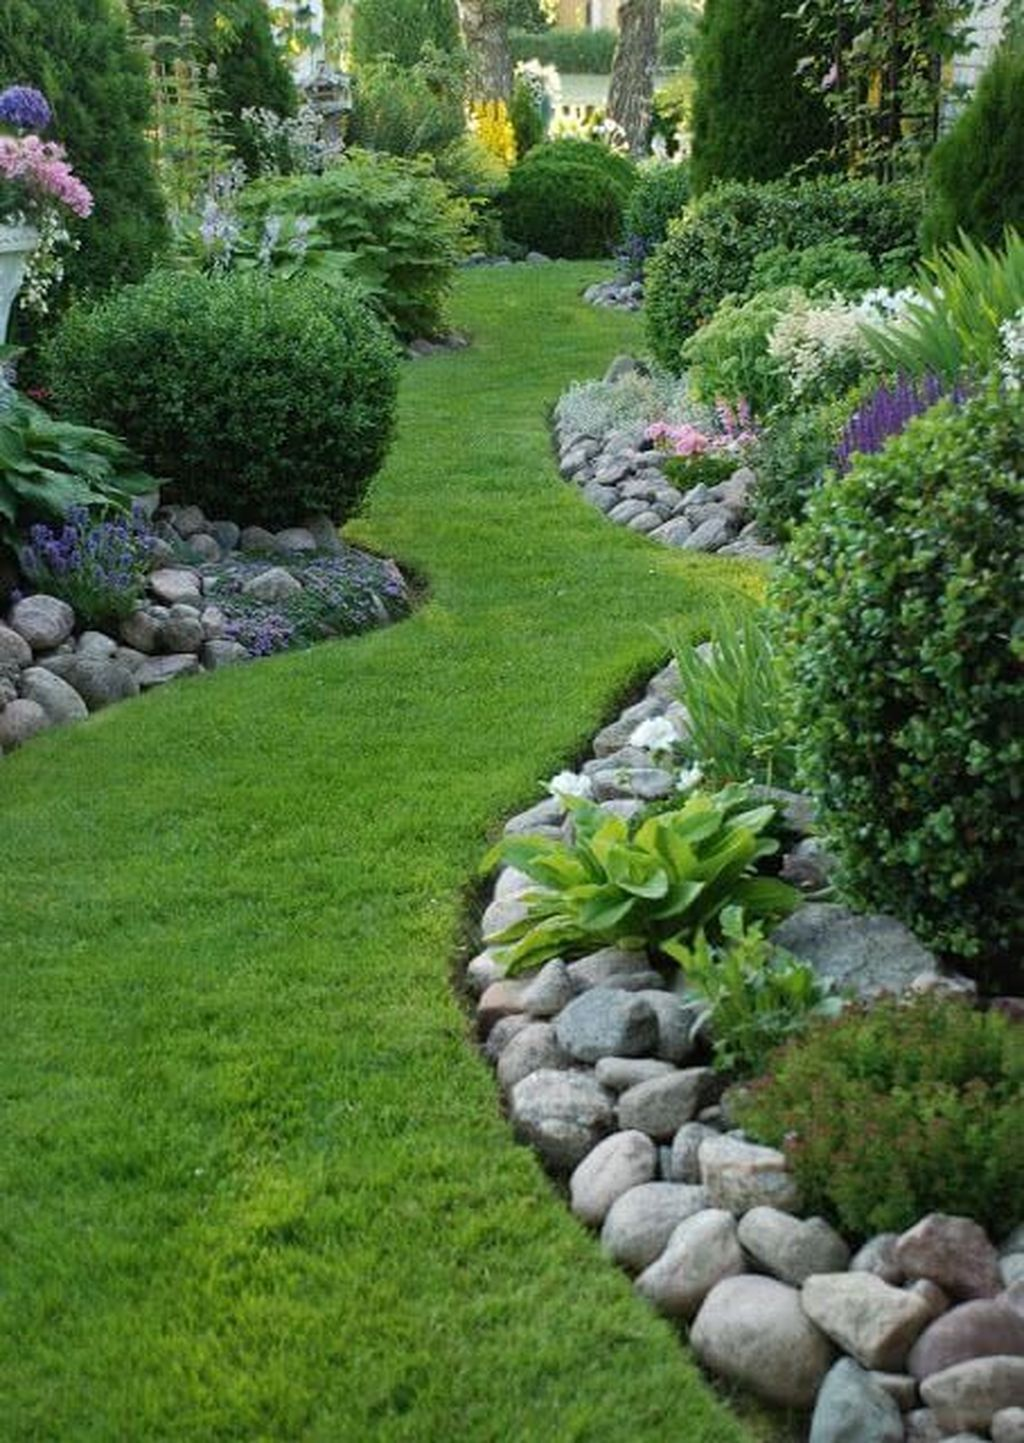 House garden landscape  Stunning Front Yard Landscaping Ideas On A Budget   Salads